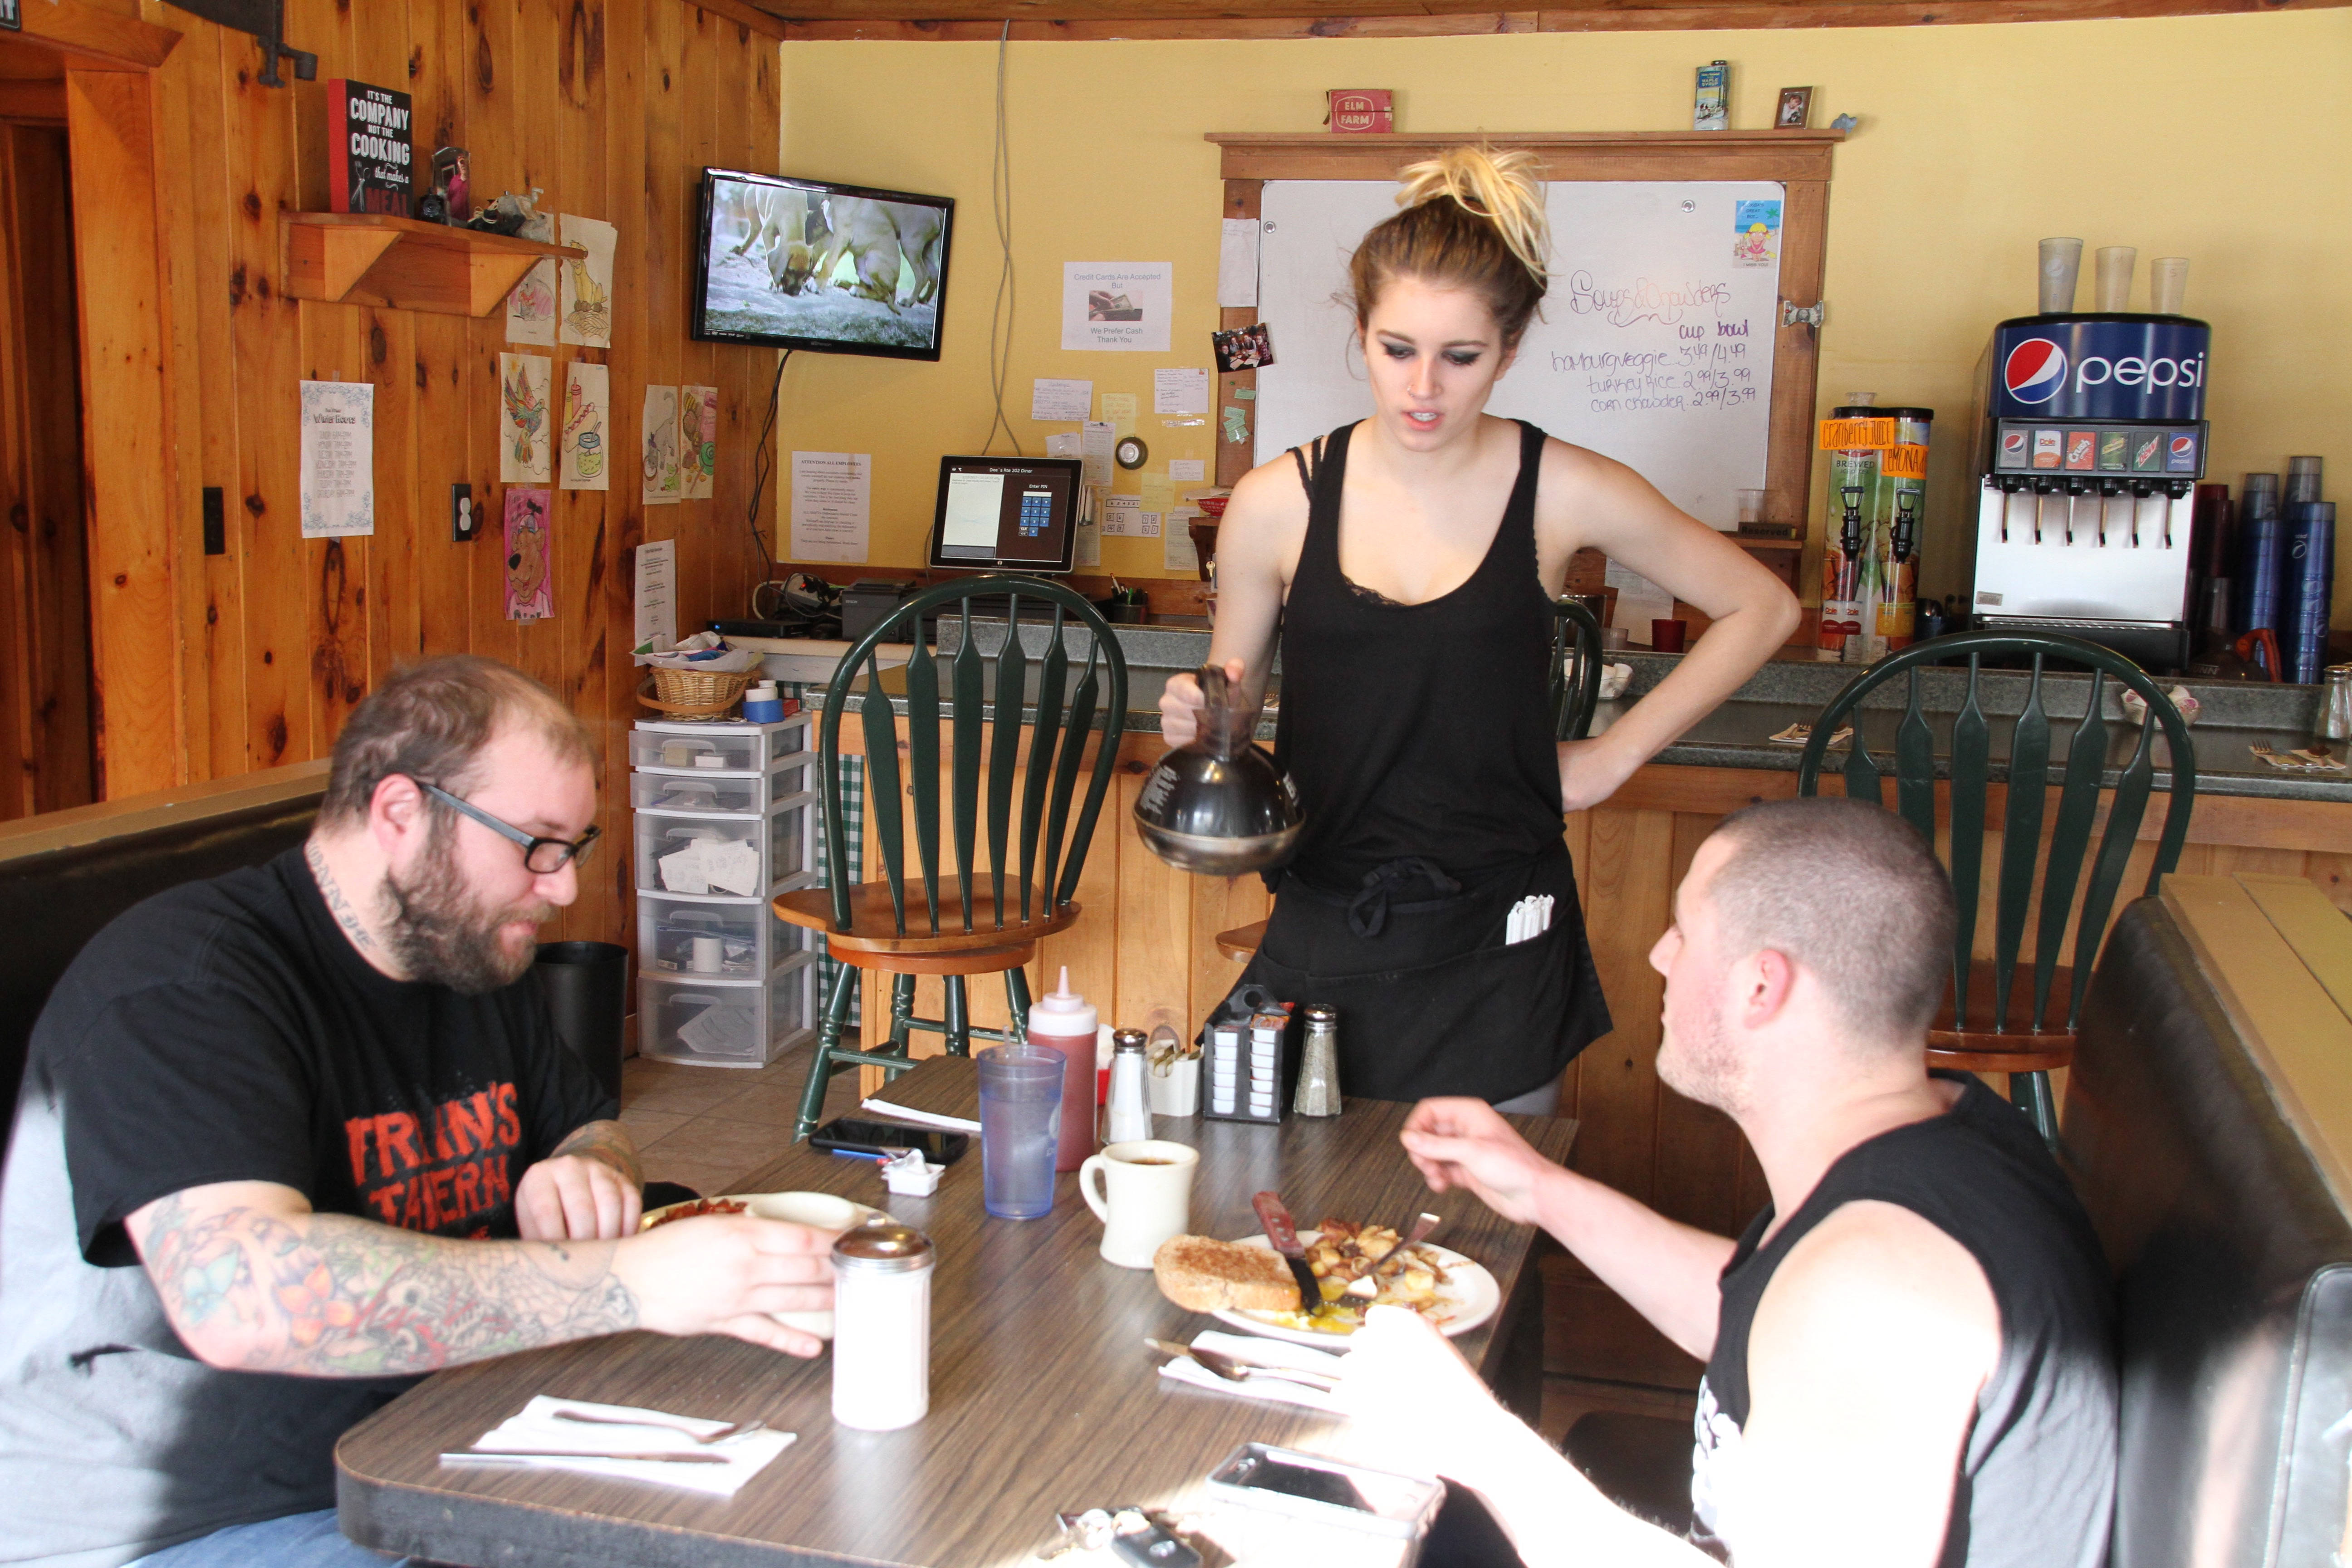 Olivia Tasker pours coffee for R.J. Soucie, left, and Nick McCrfisson, right, at Dee's Route 202 Diner in Lebanon Tuesday morning. Owner Stephanie Harding said  Maine's new minimum wage laws, approved by voters in a referendum Nov. 8, has meant she's had to lay off one employee, cut the hours of two others and reduce the diner's evening schedule from three nights to one for the winter months. The diner is open seven days a week for breakfast and lunch. TAMMY WELLS/Journal Tribune